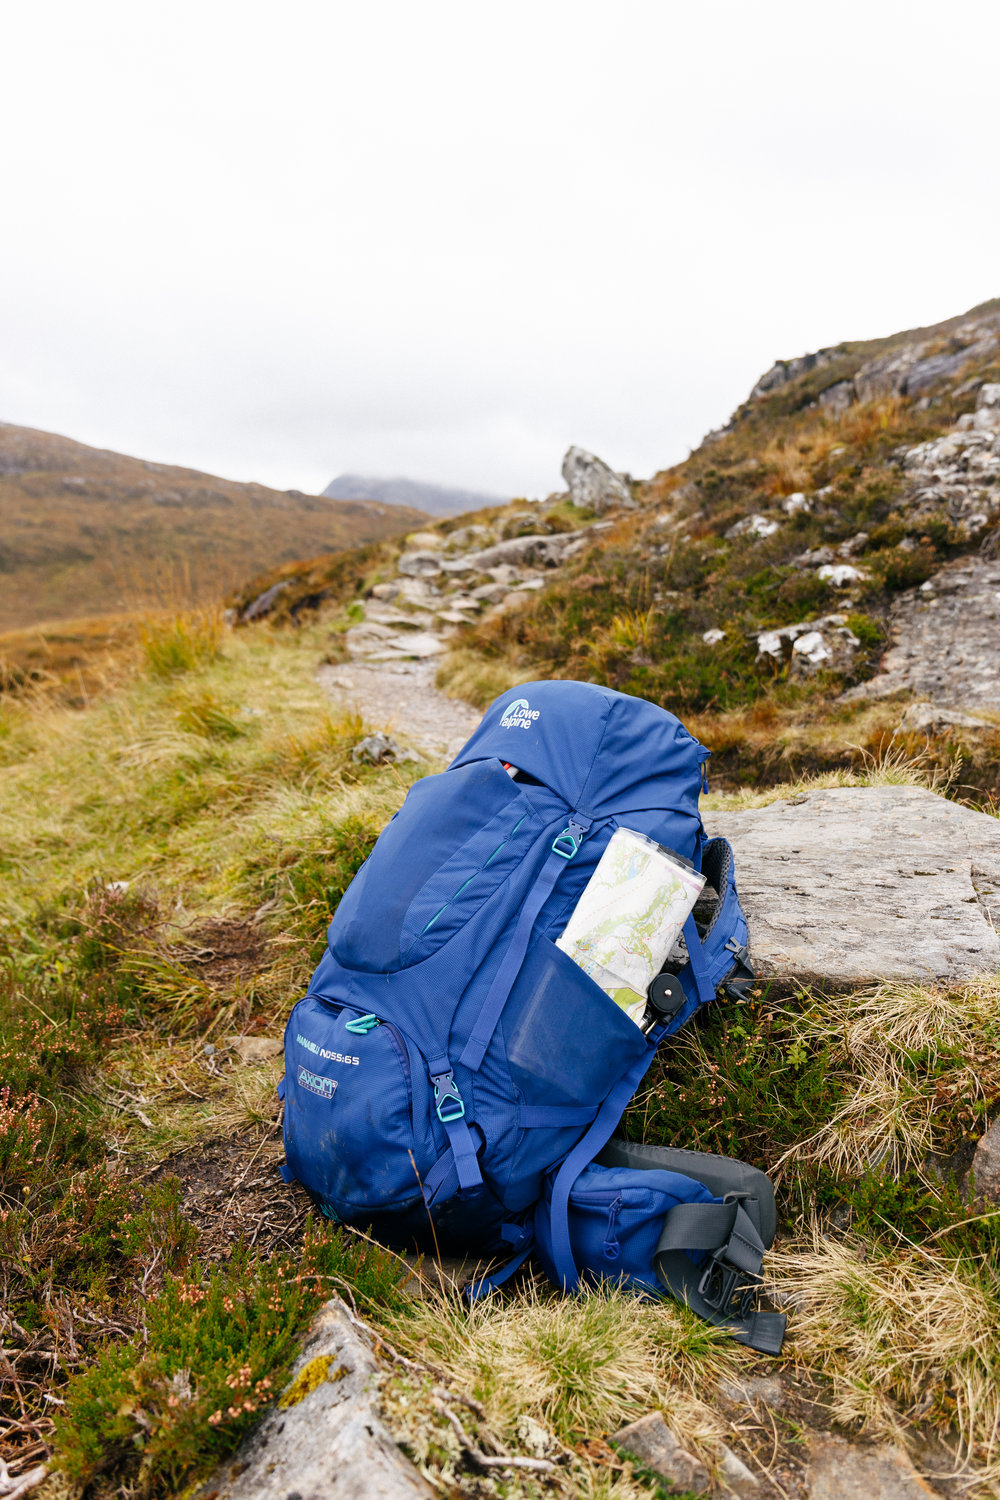 The Manaslu 55:65 on the West Highland Way